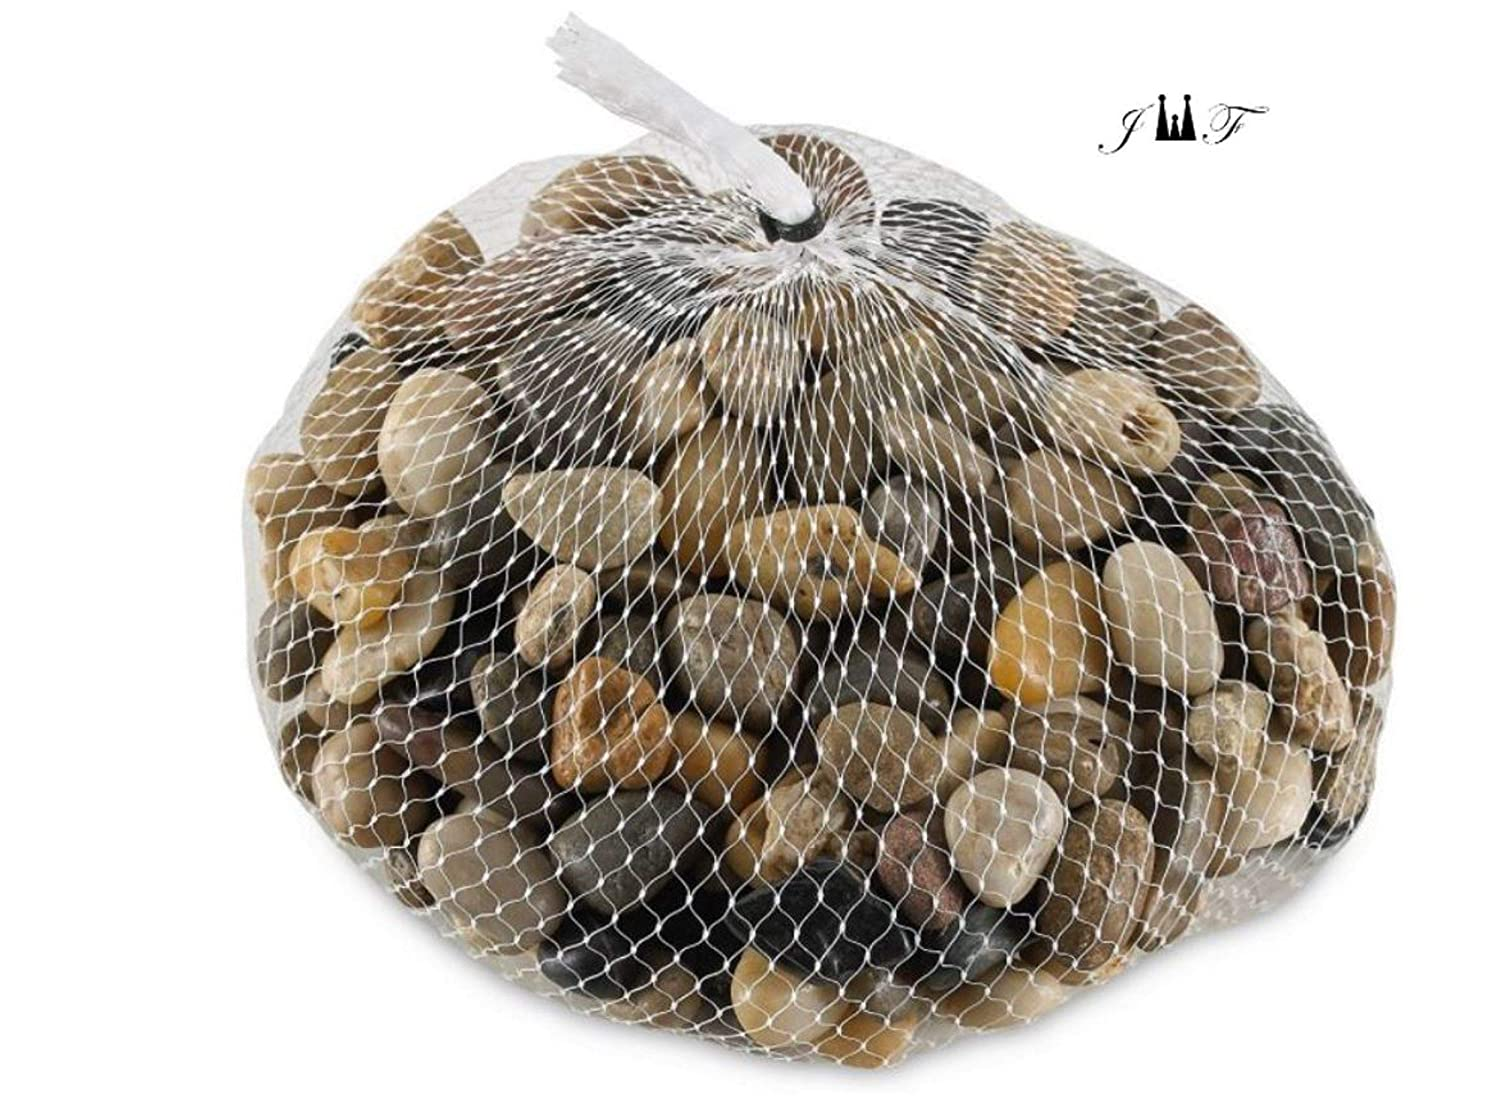 2 Pounds River Rock Stones - Natural Polished, Pebbles, Outdoor Decorative Stones, Natural Gravel, For Aquariums, Landscaping, Vase Fillers, Succulent, Tillandsia, Cactus pot, Terrarium Plants